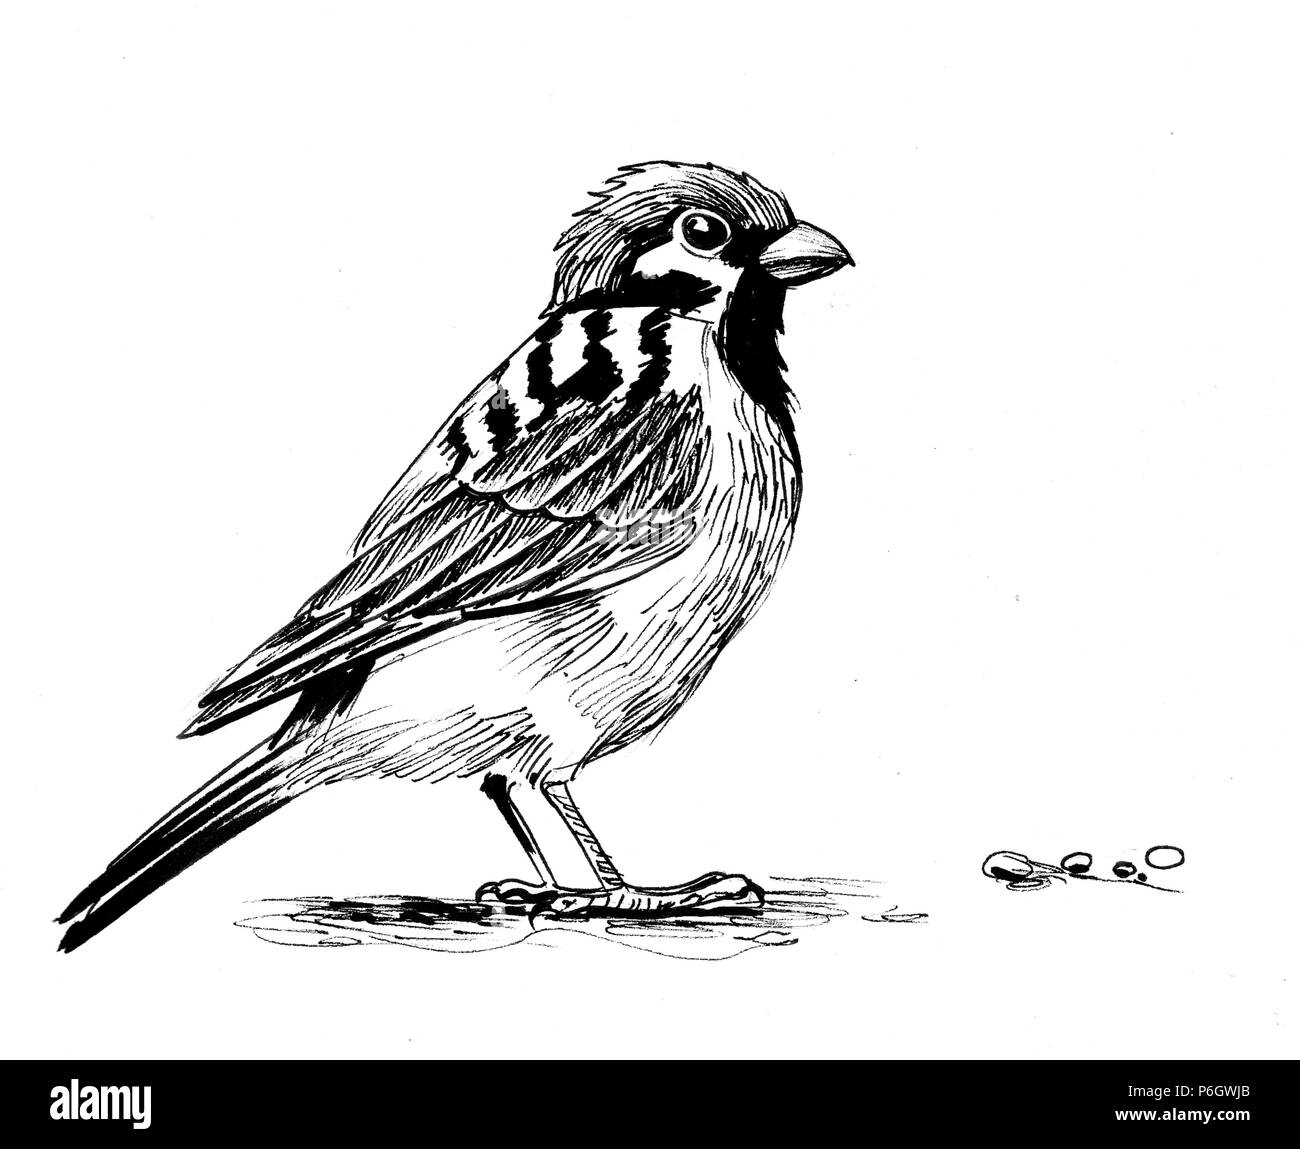 Sparrow bird ink black and white illustration stock photo